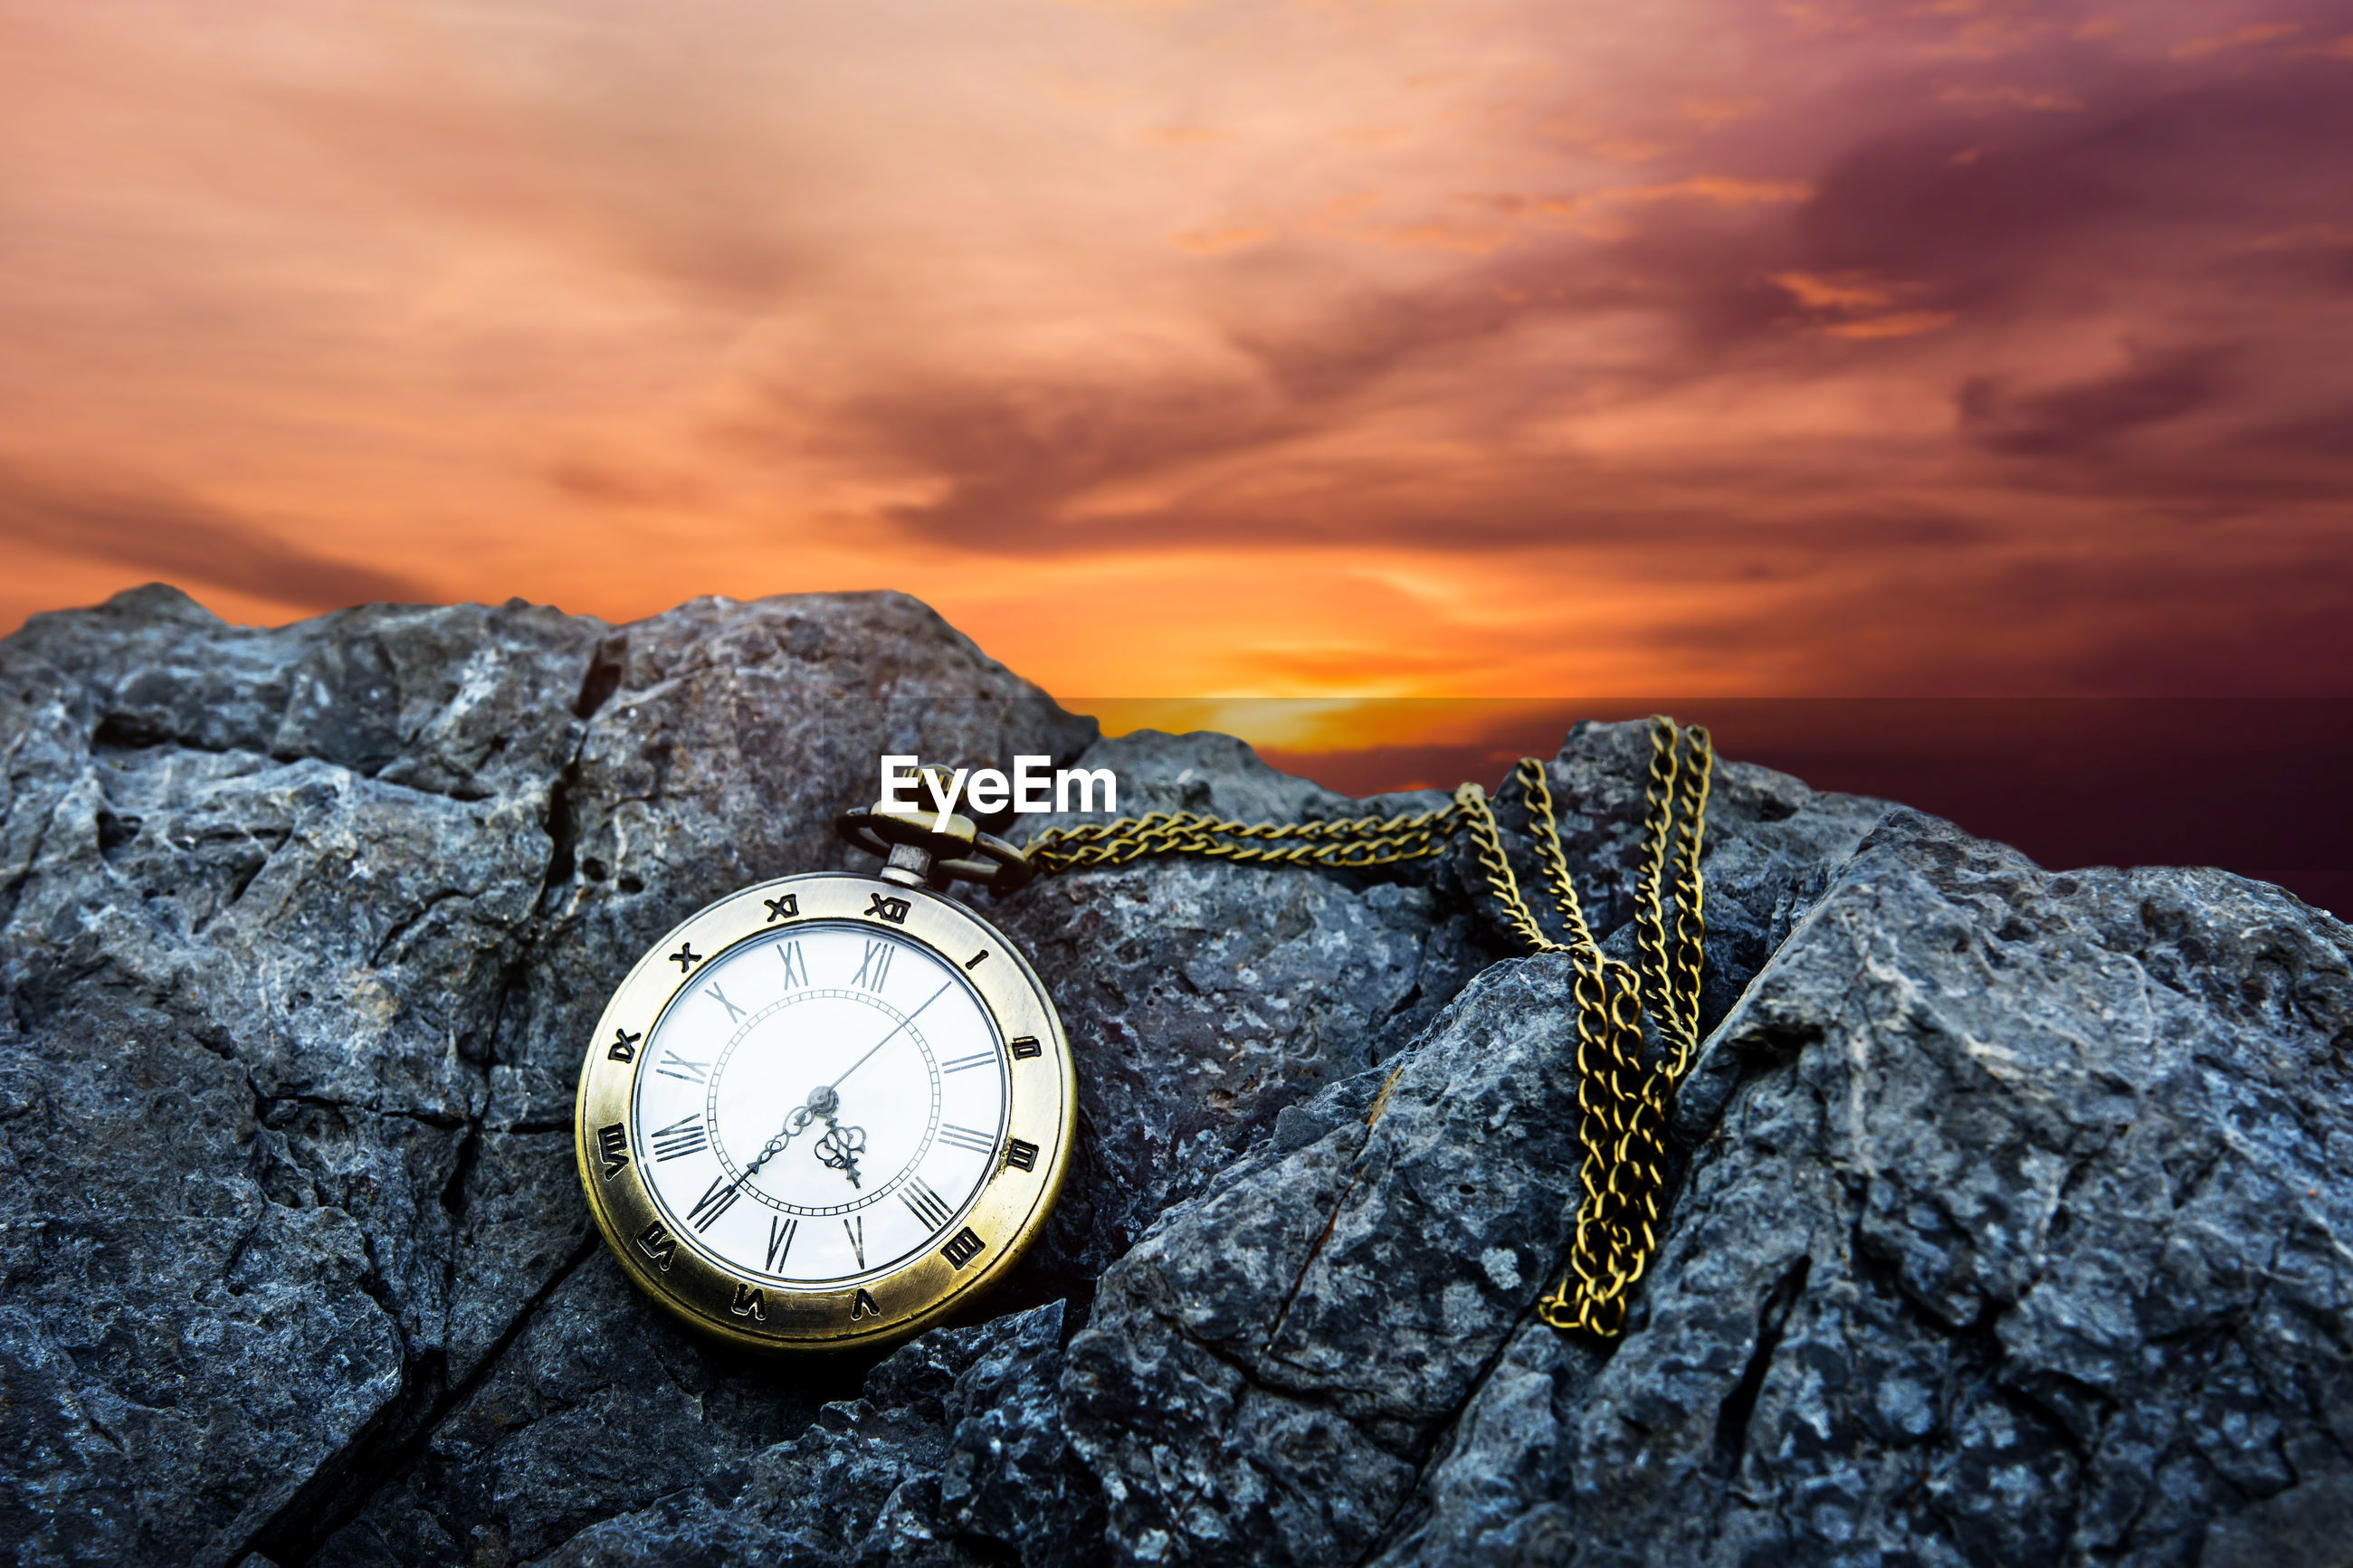 Close-up of pocket watch on rock against sky during sunset